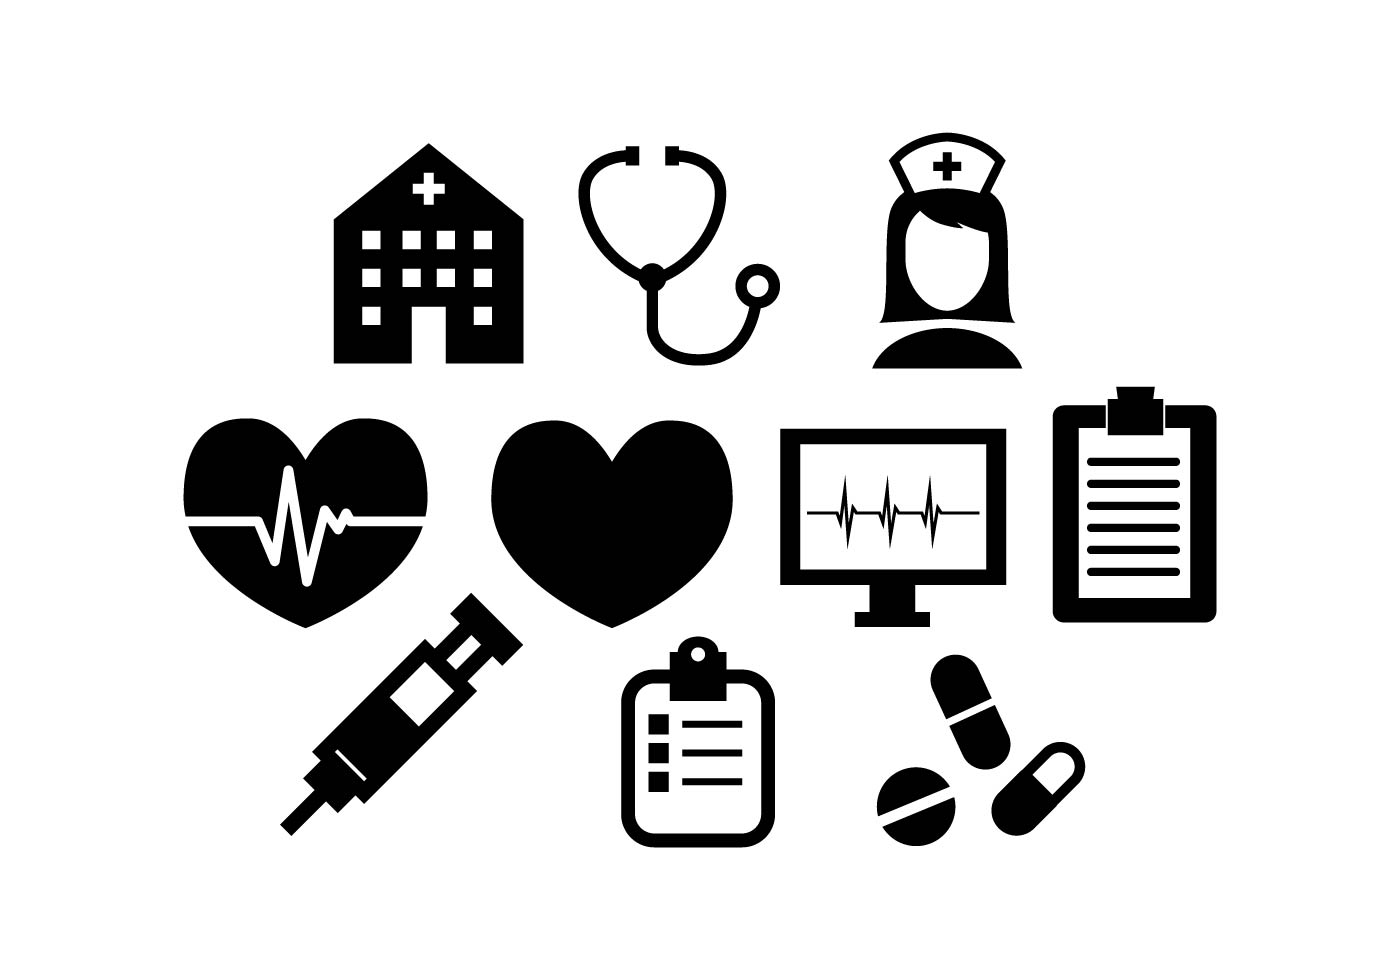 Medical Silhouette Free Vector Art